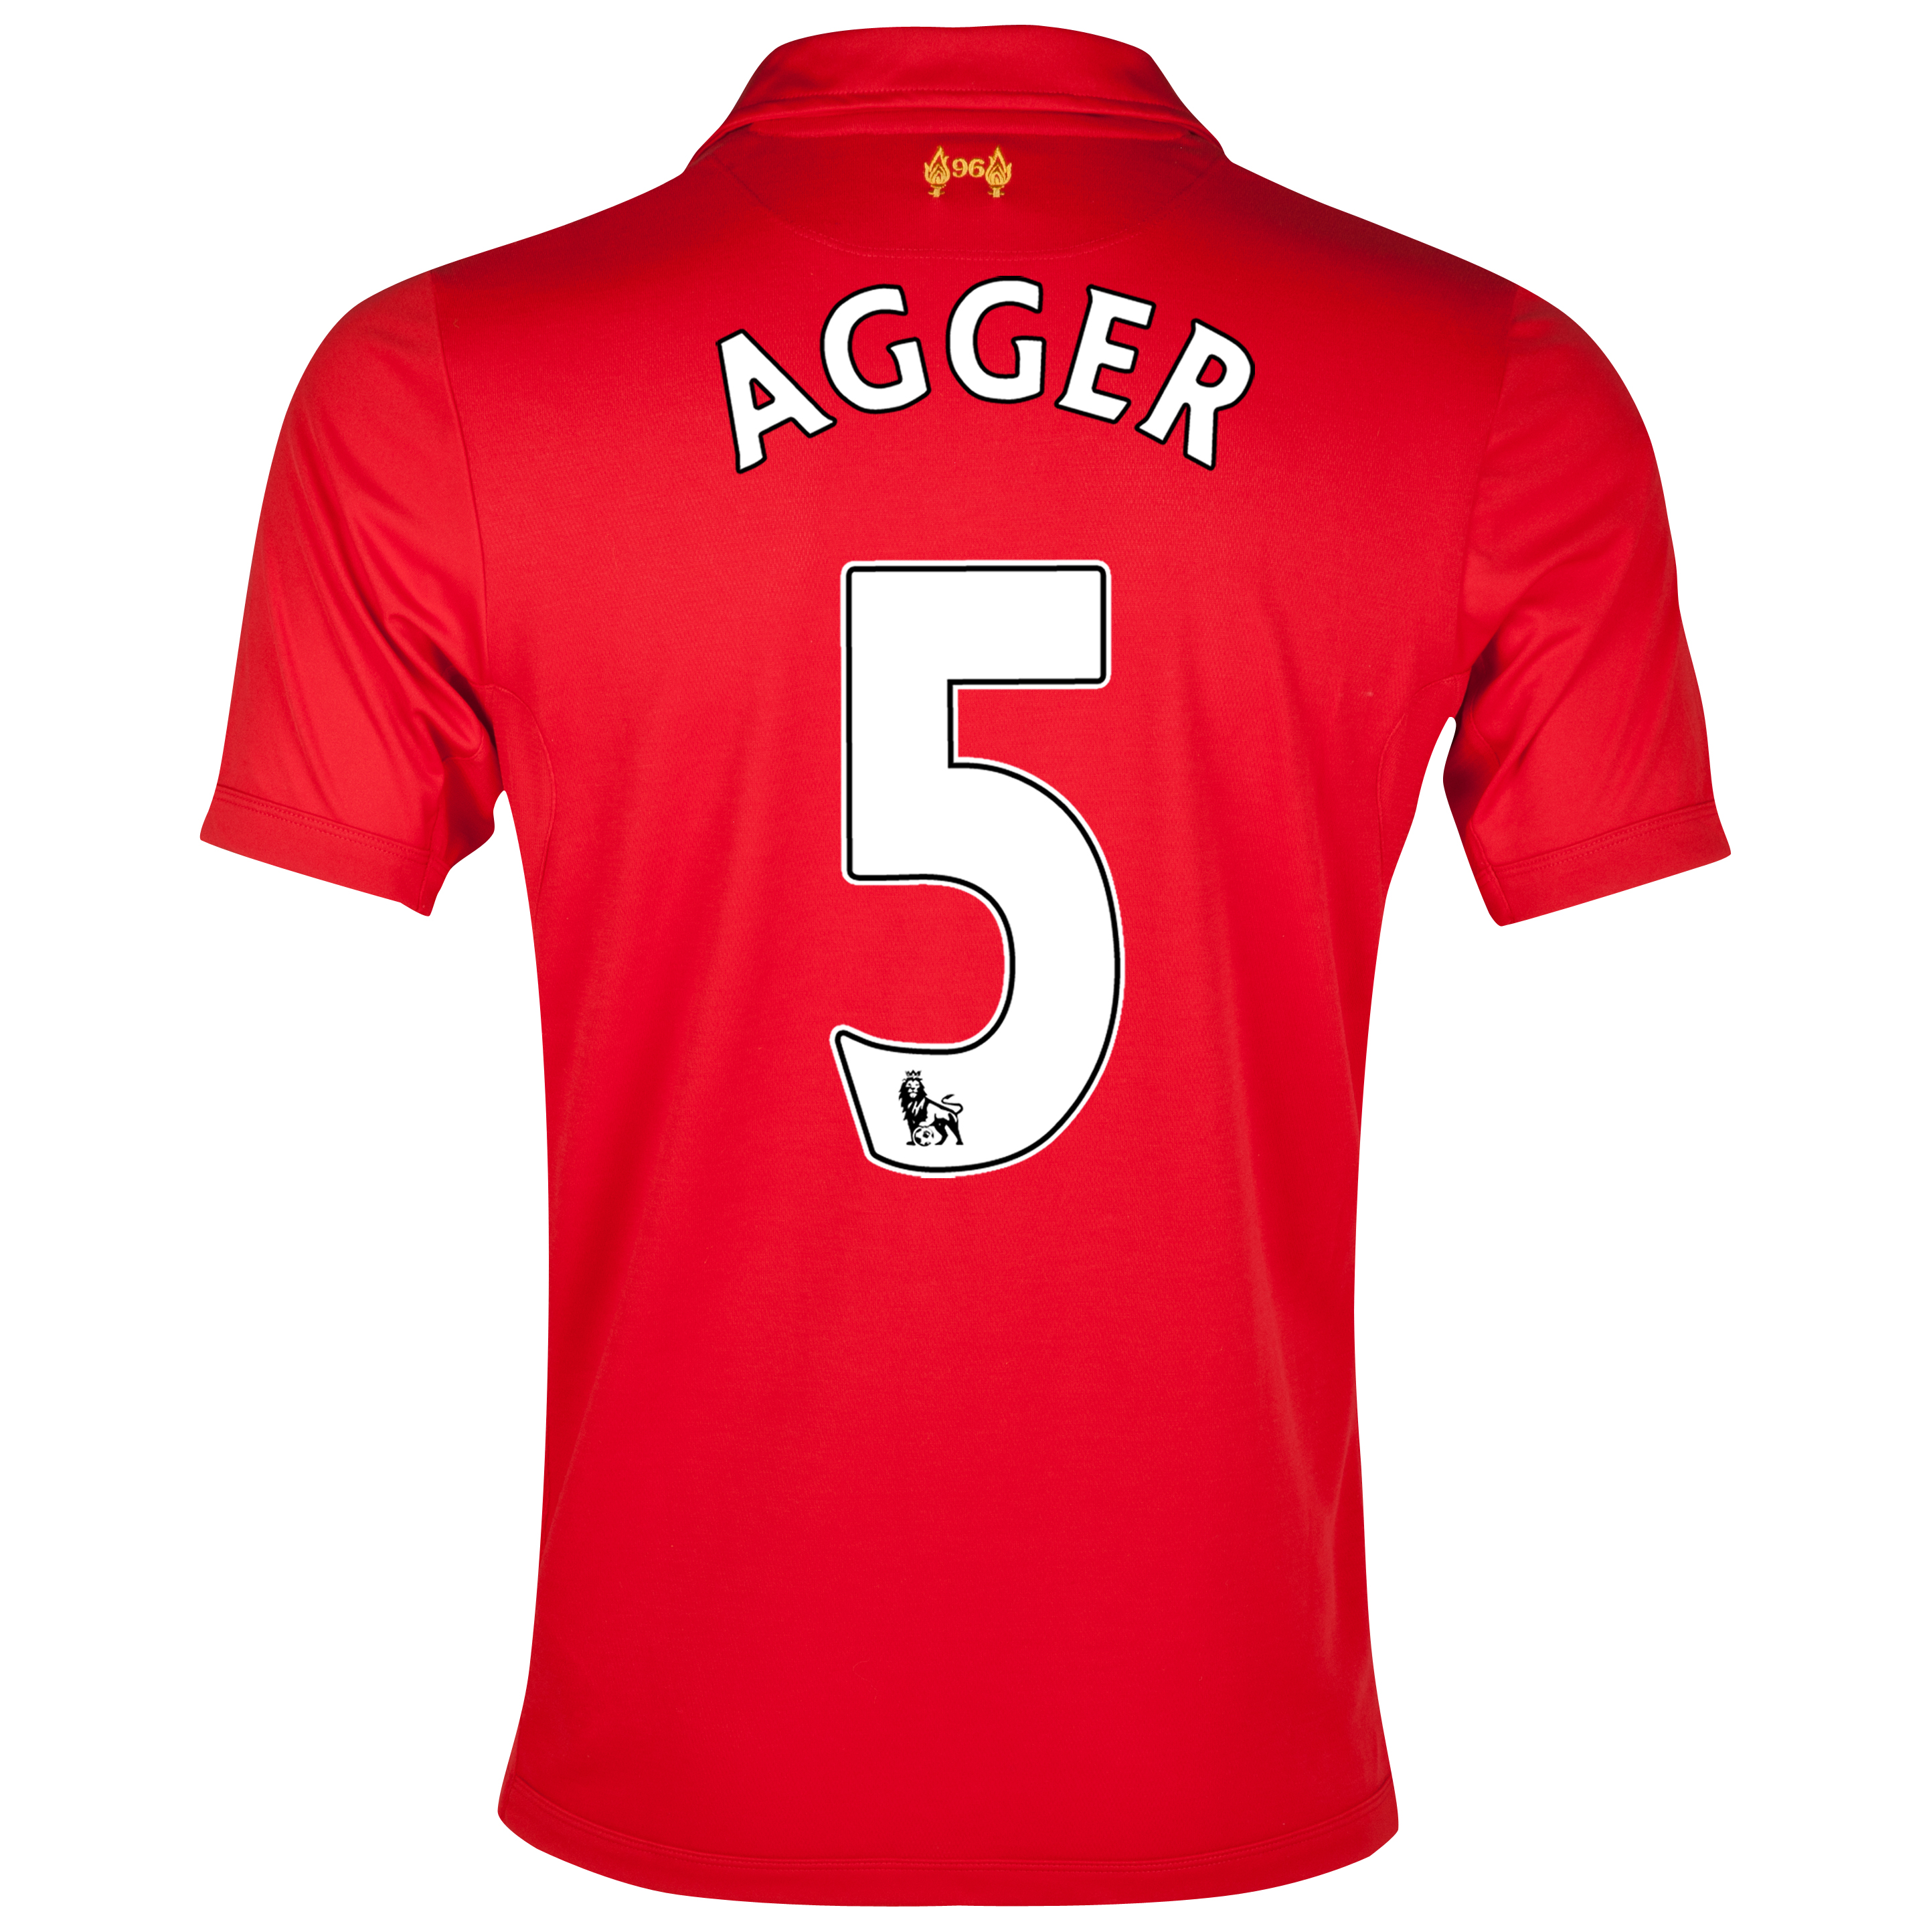 Liverpool Home Shirt 2012/13 with Agger 5 printing